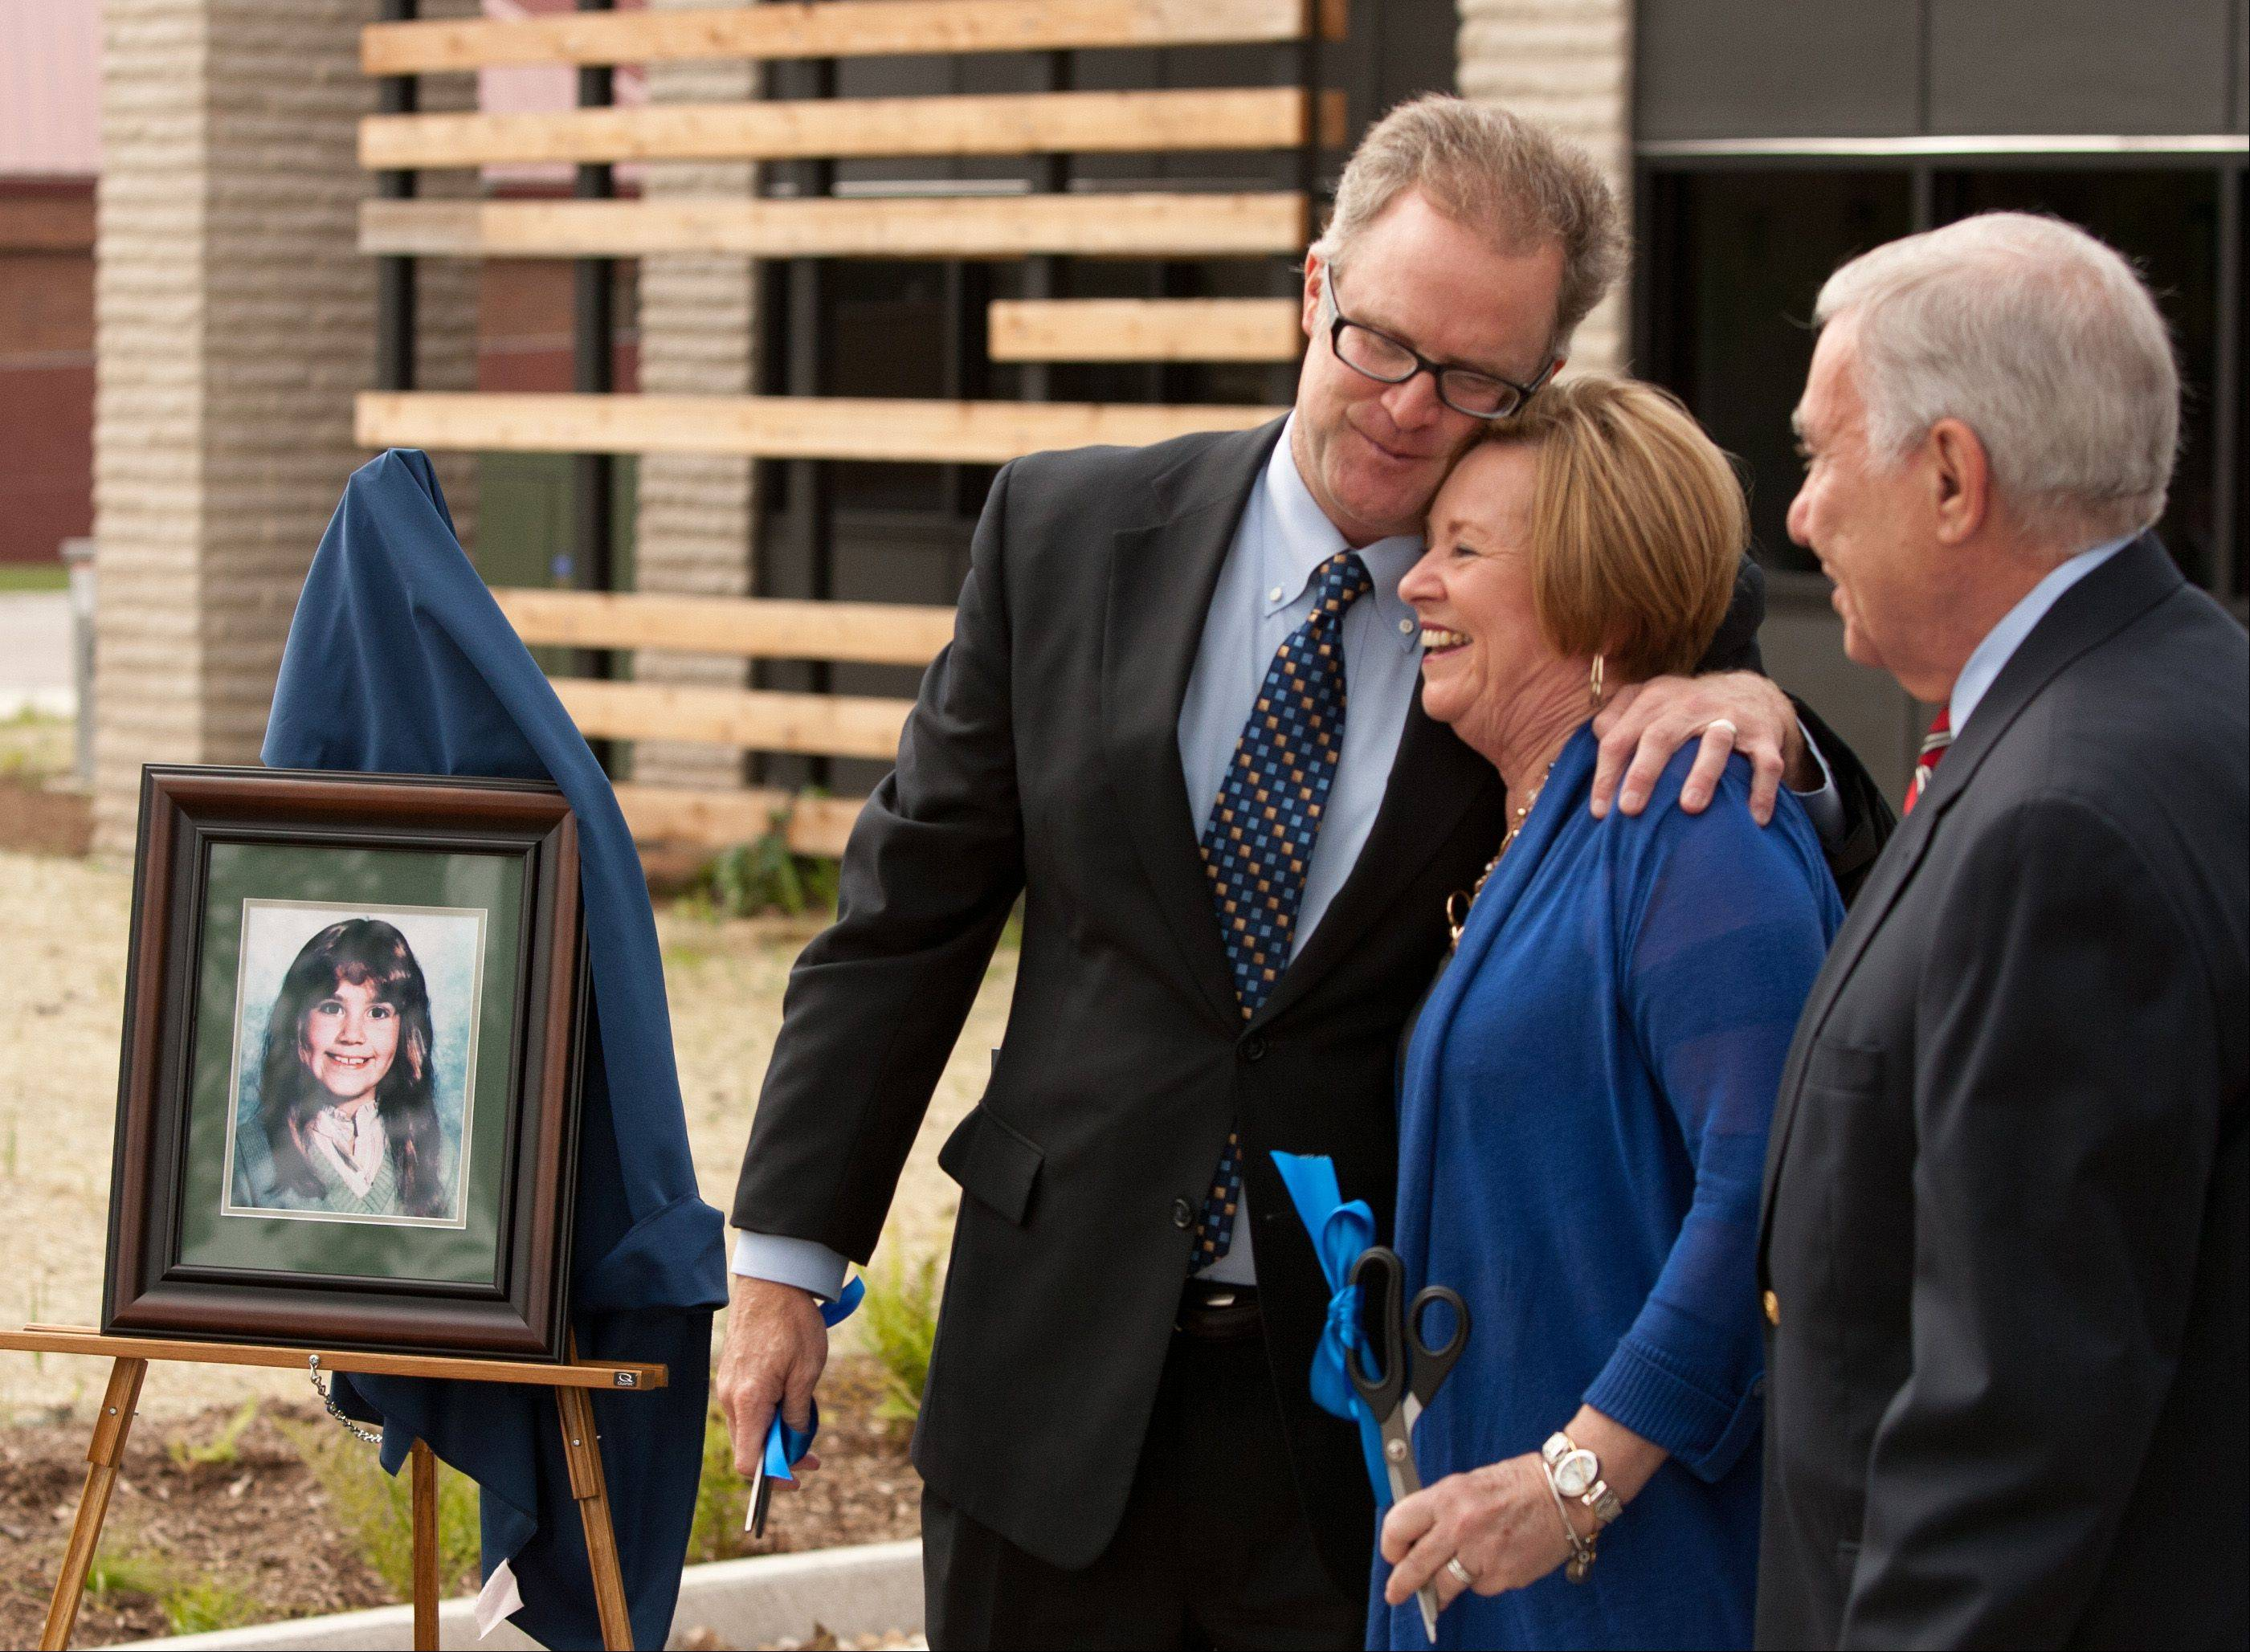 DuPage County Chairman Dan Cronin embraces Patricia Nicarico and her husband Tom, right, as DuPage County officials dedicate the new Jeanine Nicarico Children's Advocacy Center.